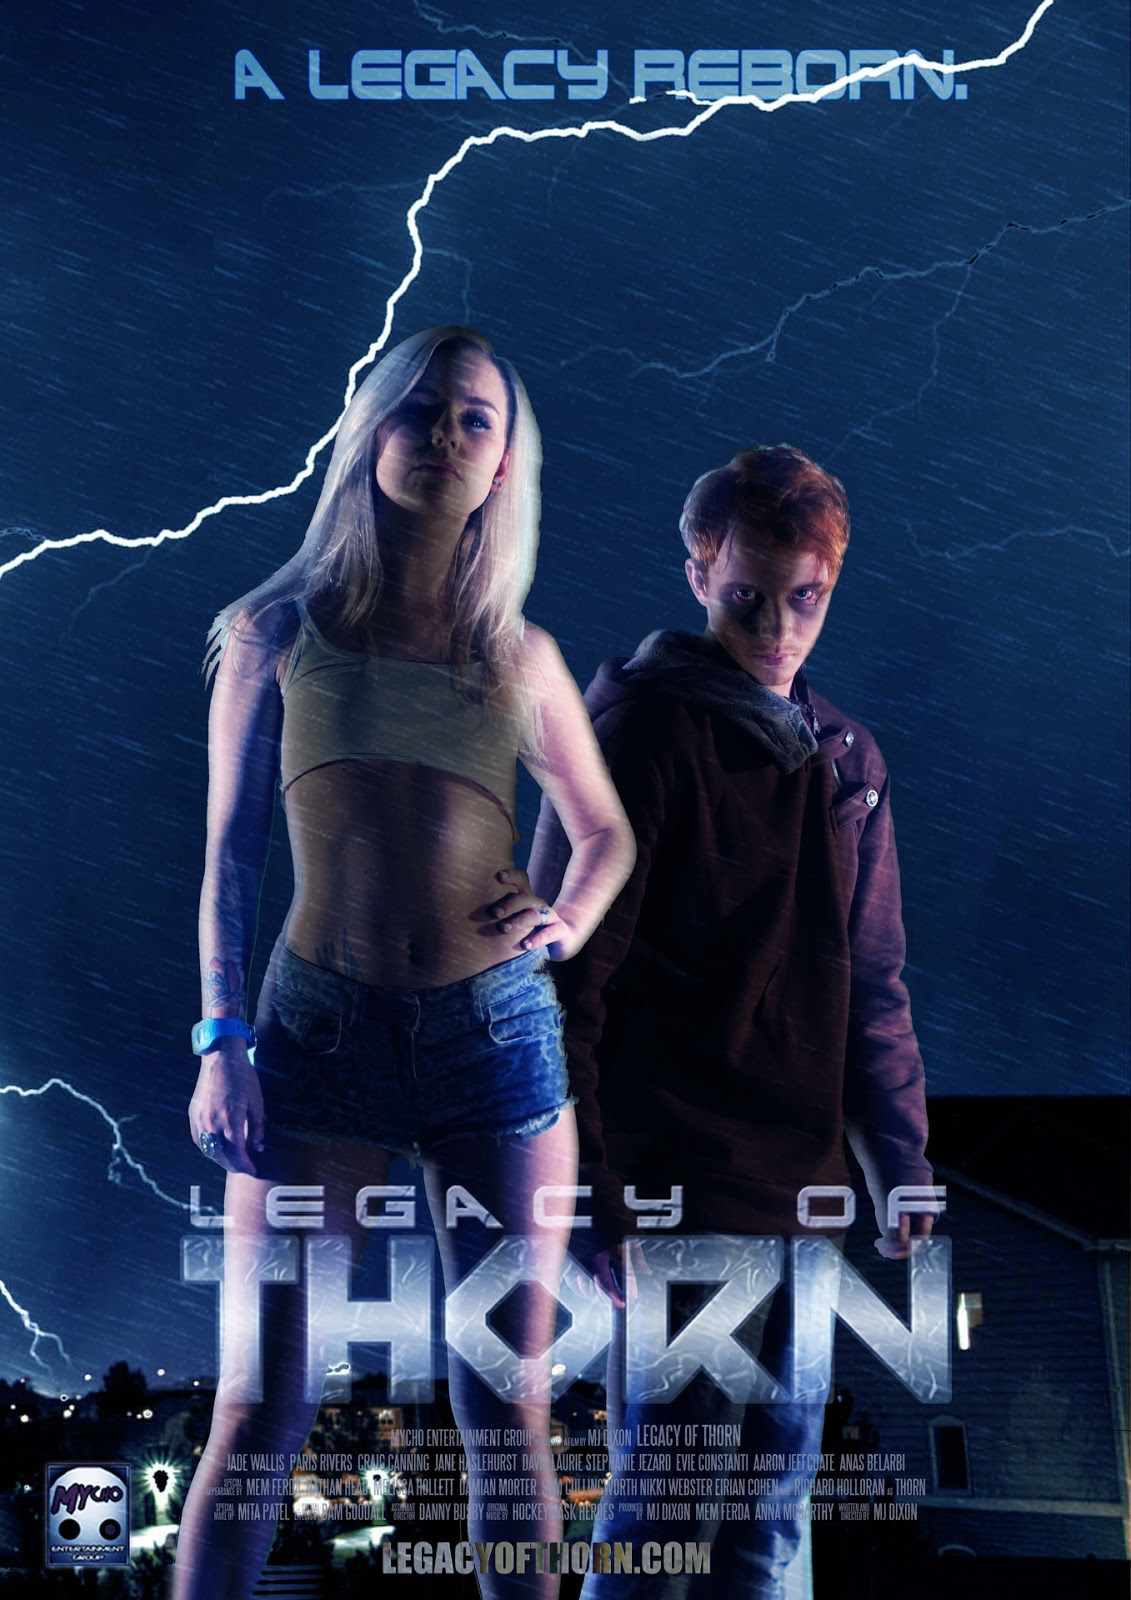 cult films and the people who make them: legacy of thorn